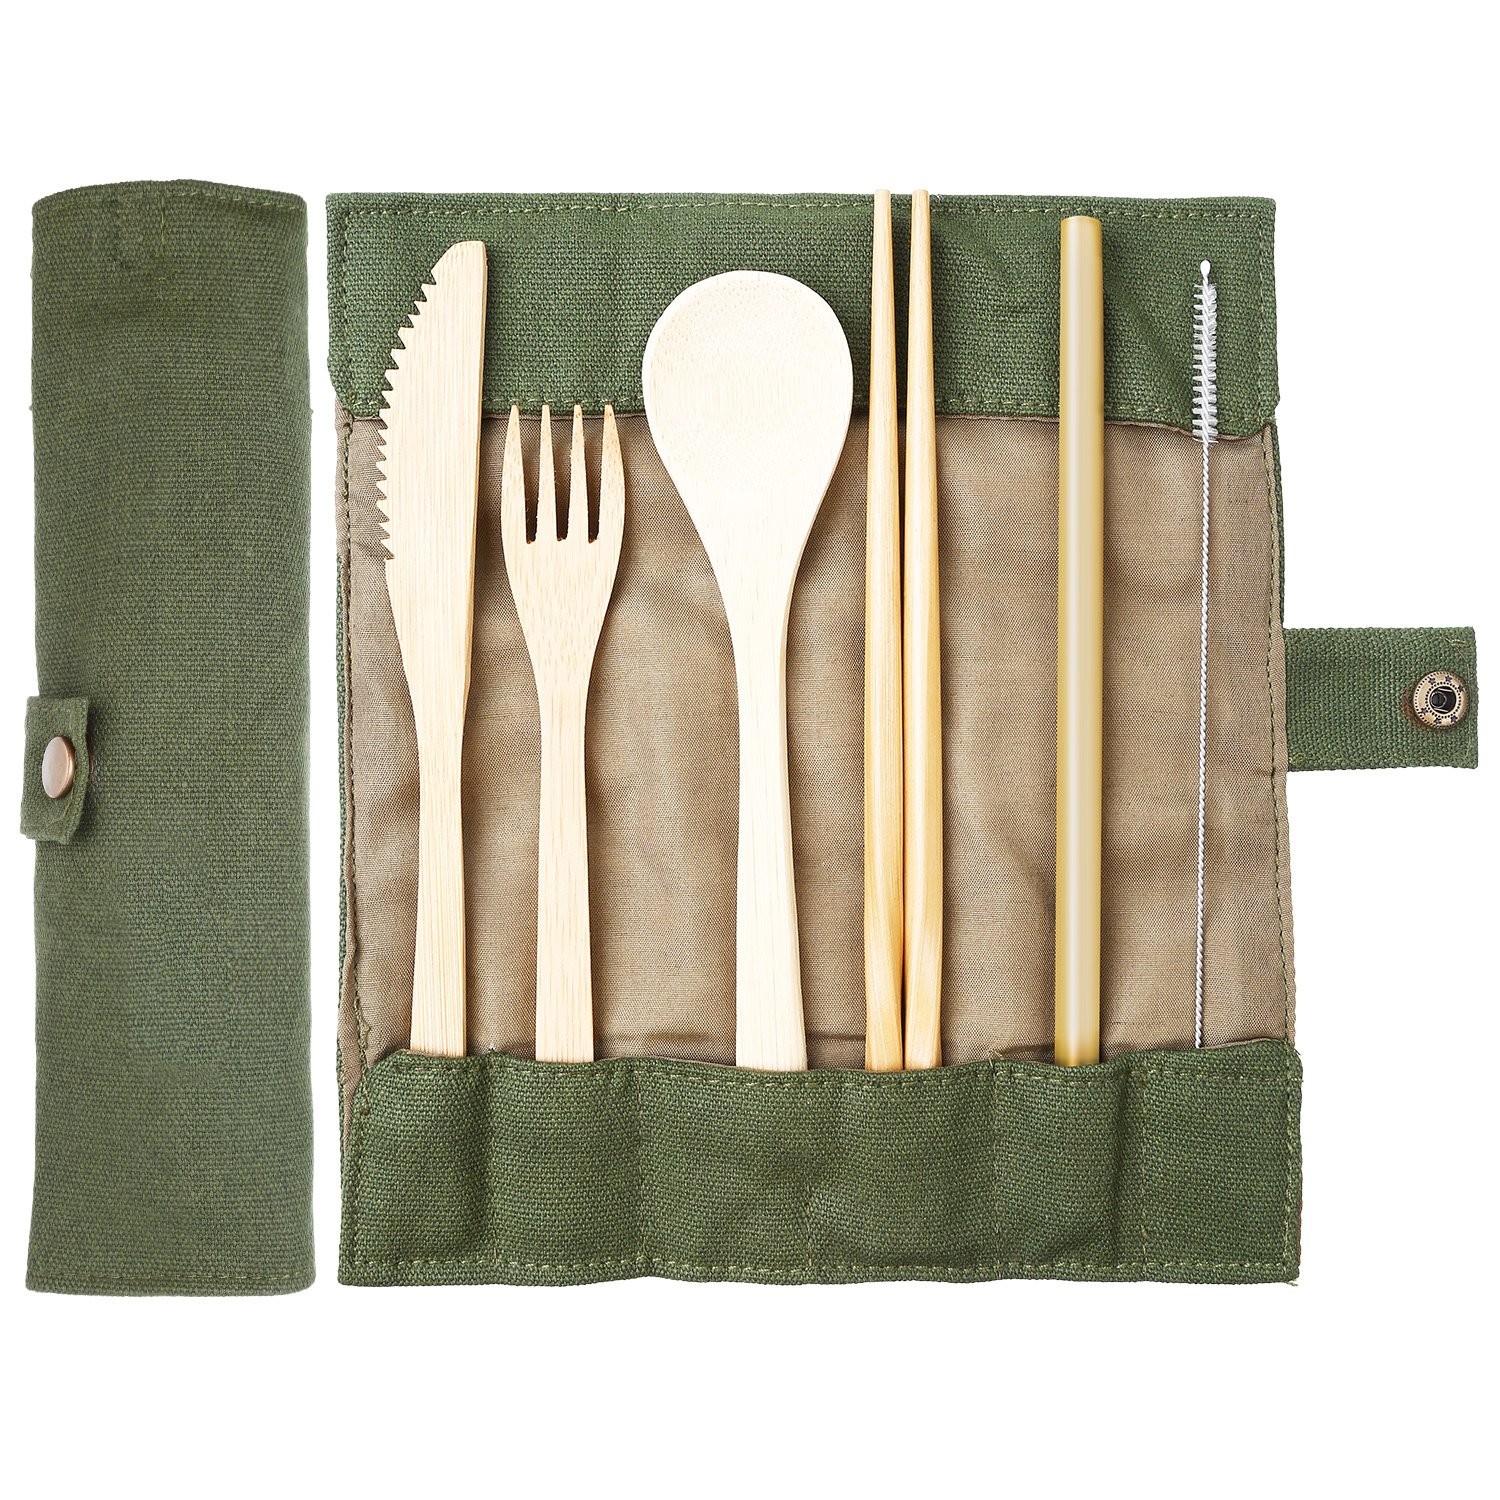 Jovitec Bamboo Travel Utensils Bamboo Cutlery Set Camping Cutlery with Knife, Fork, Spoon, Chopsticks, Bamboo Straw, Suction Brush and Travel Pouch